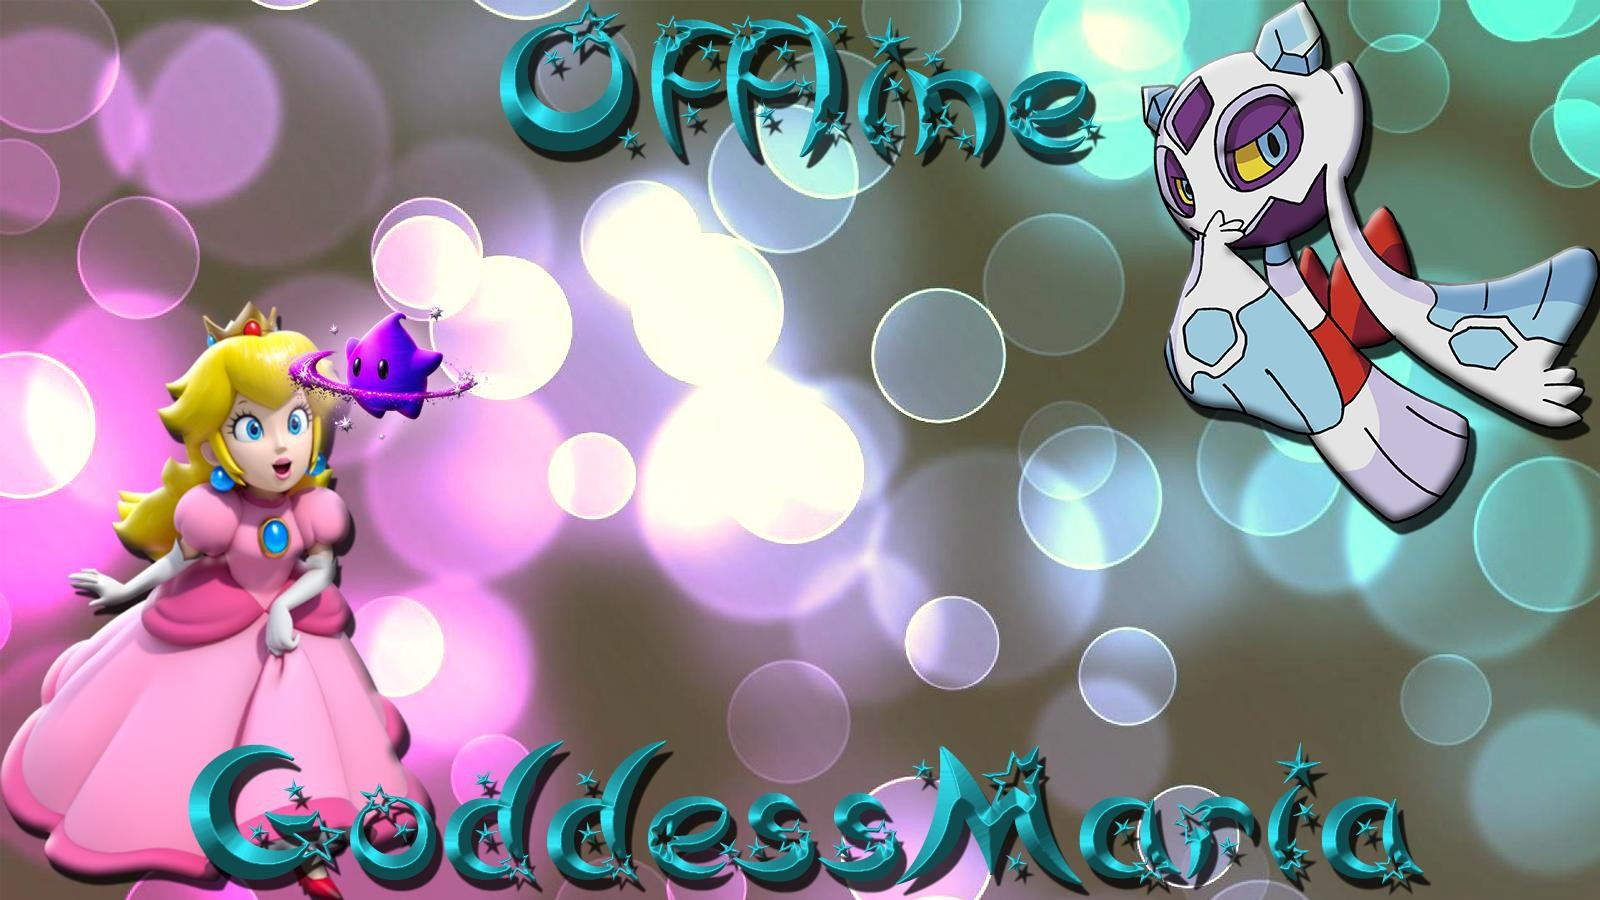 Joe cove offline banner godessmaria15 copy